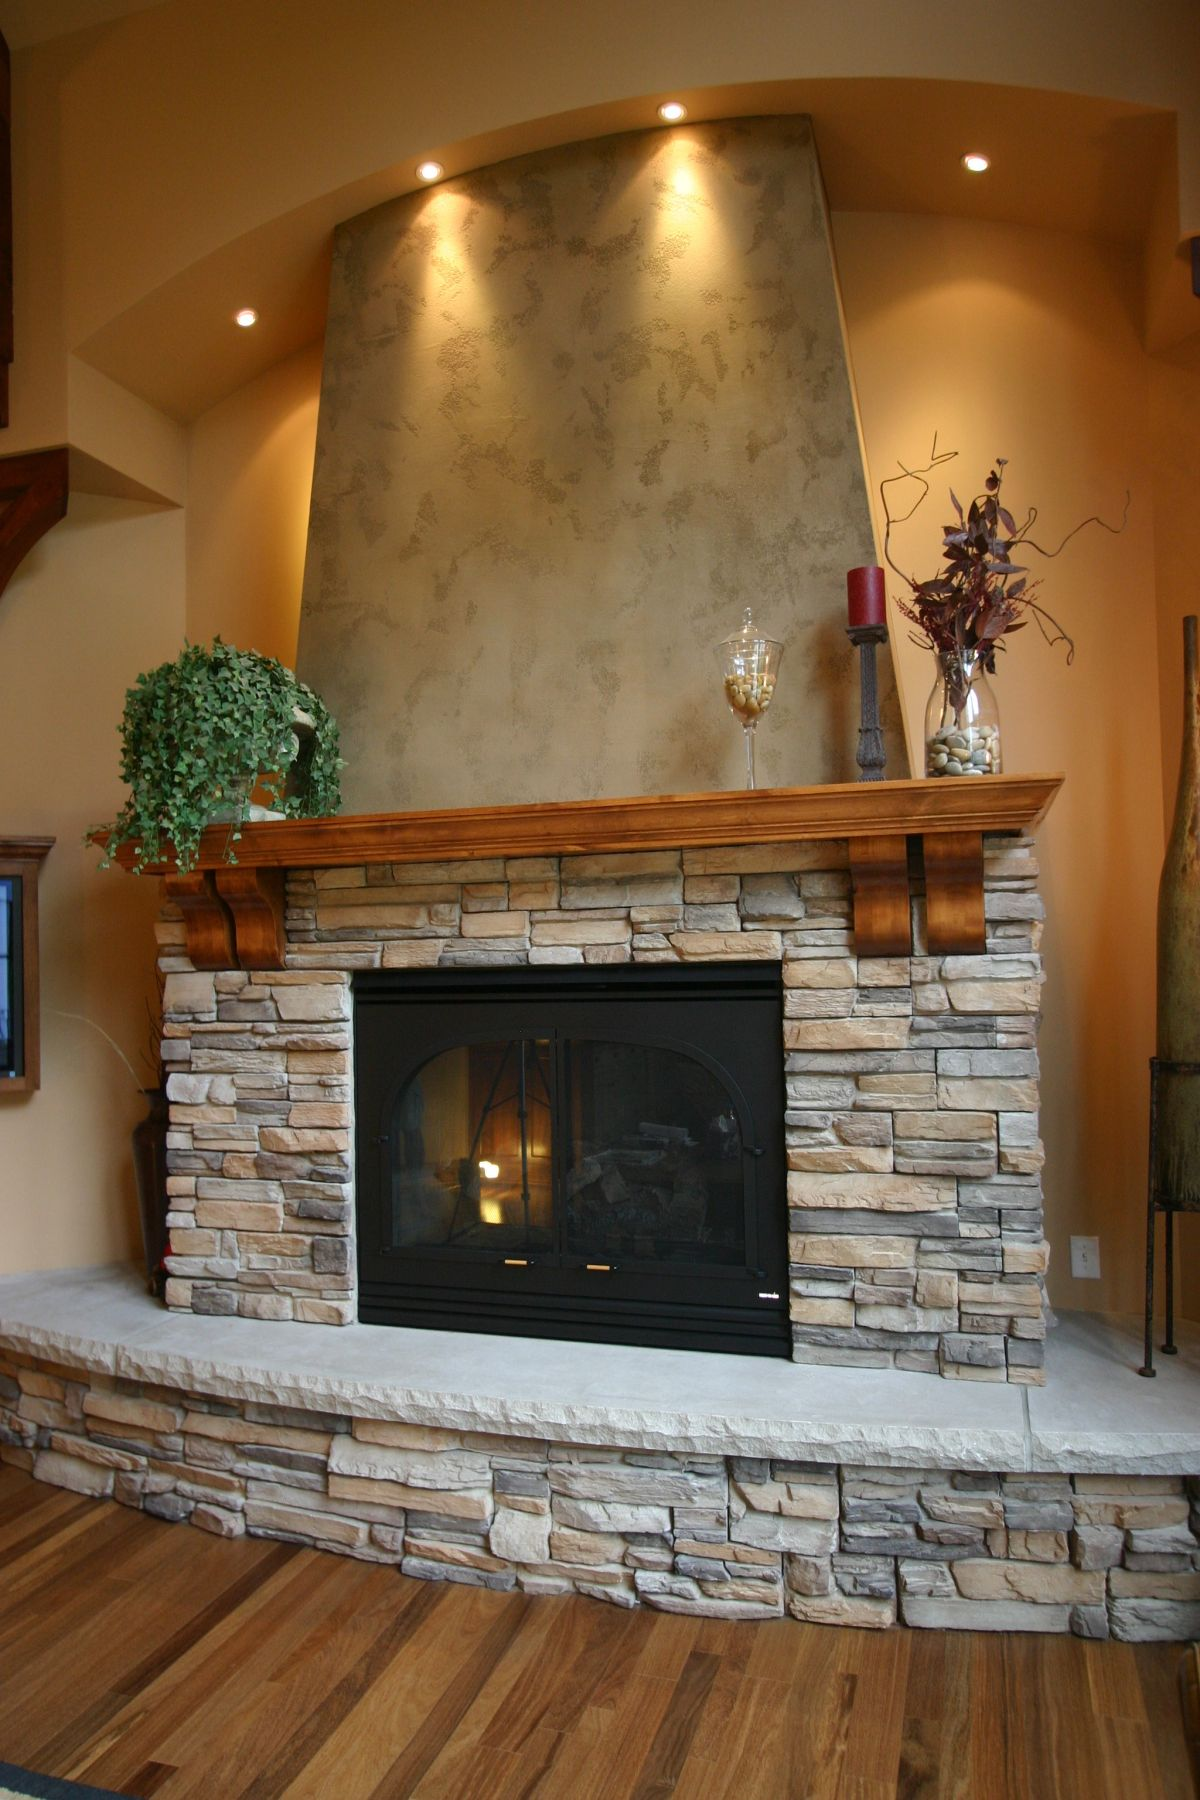 34 beautiful stone fireplaces that rock rh homedit com pictures of stone fireplaces with wood mantels pictures of stone fireplaces painted white